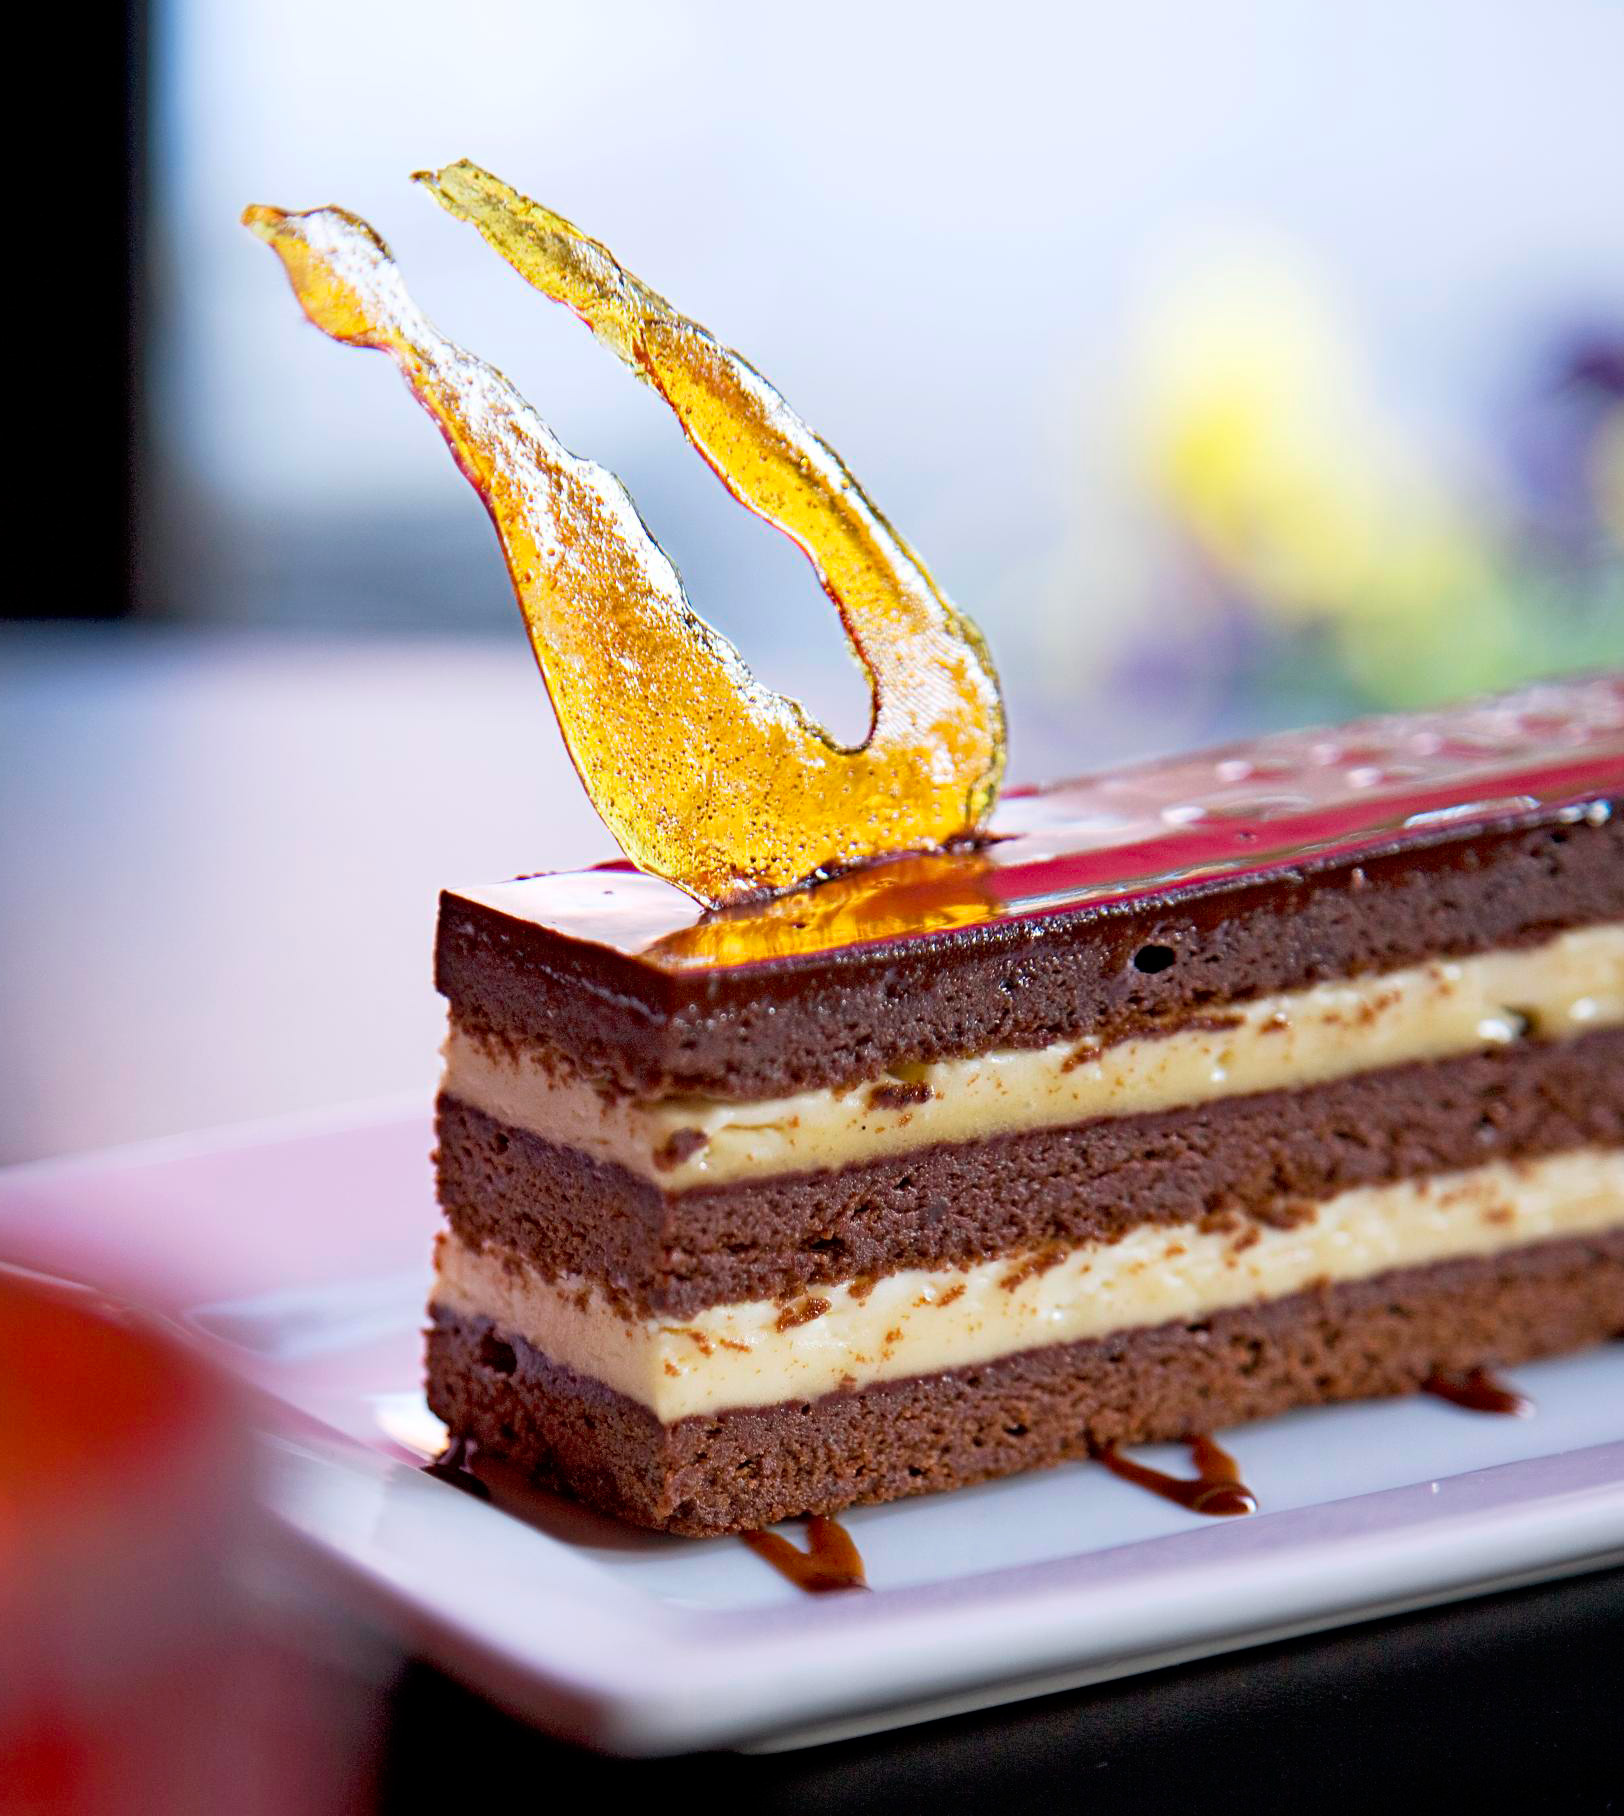 The namesake dessert at Baileys' Chocolate Bar layers cake and boozy buttercream.